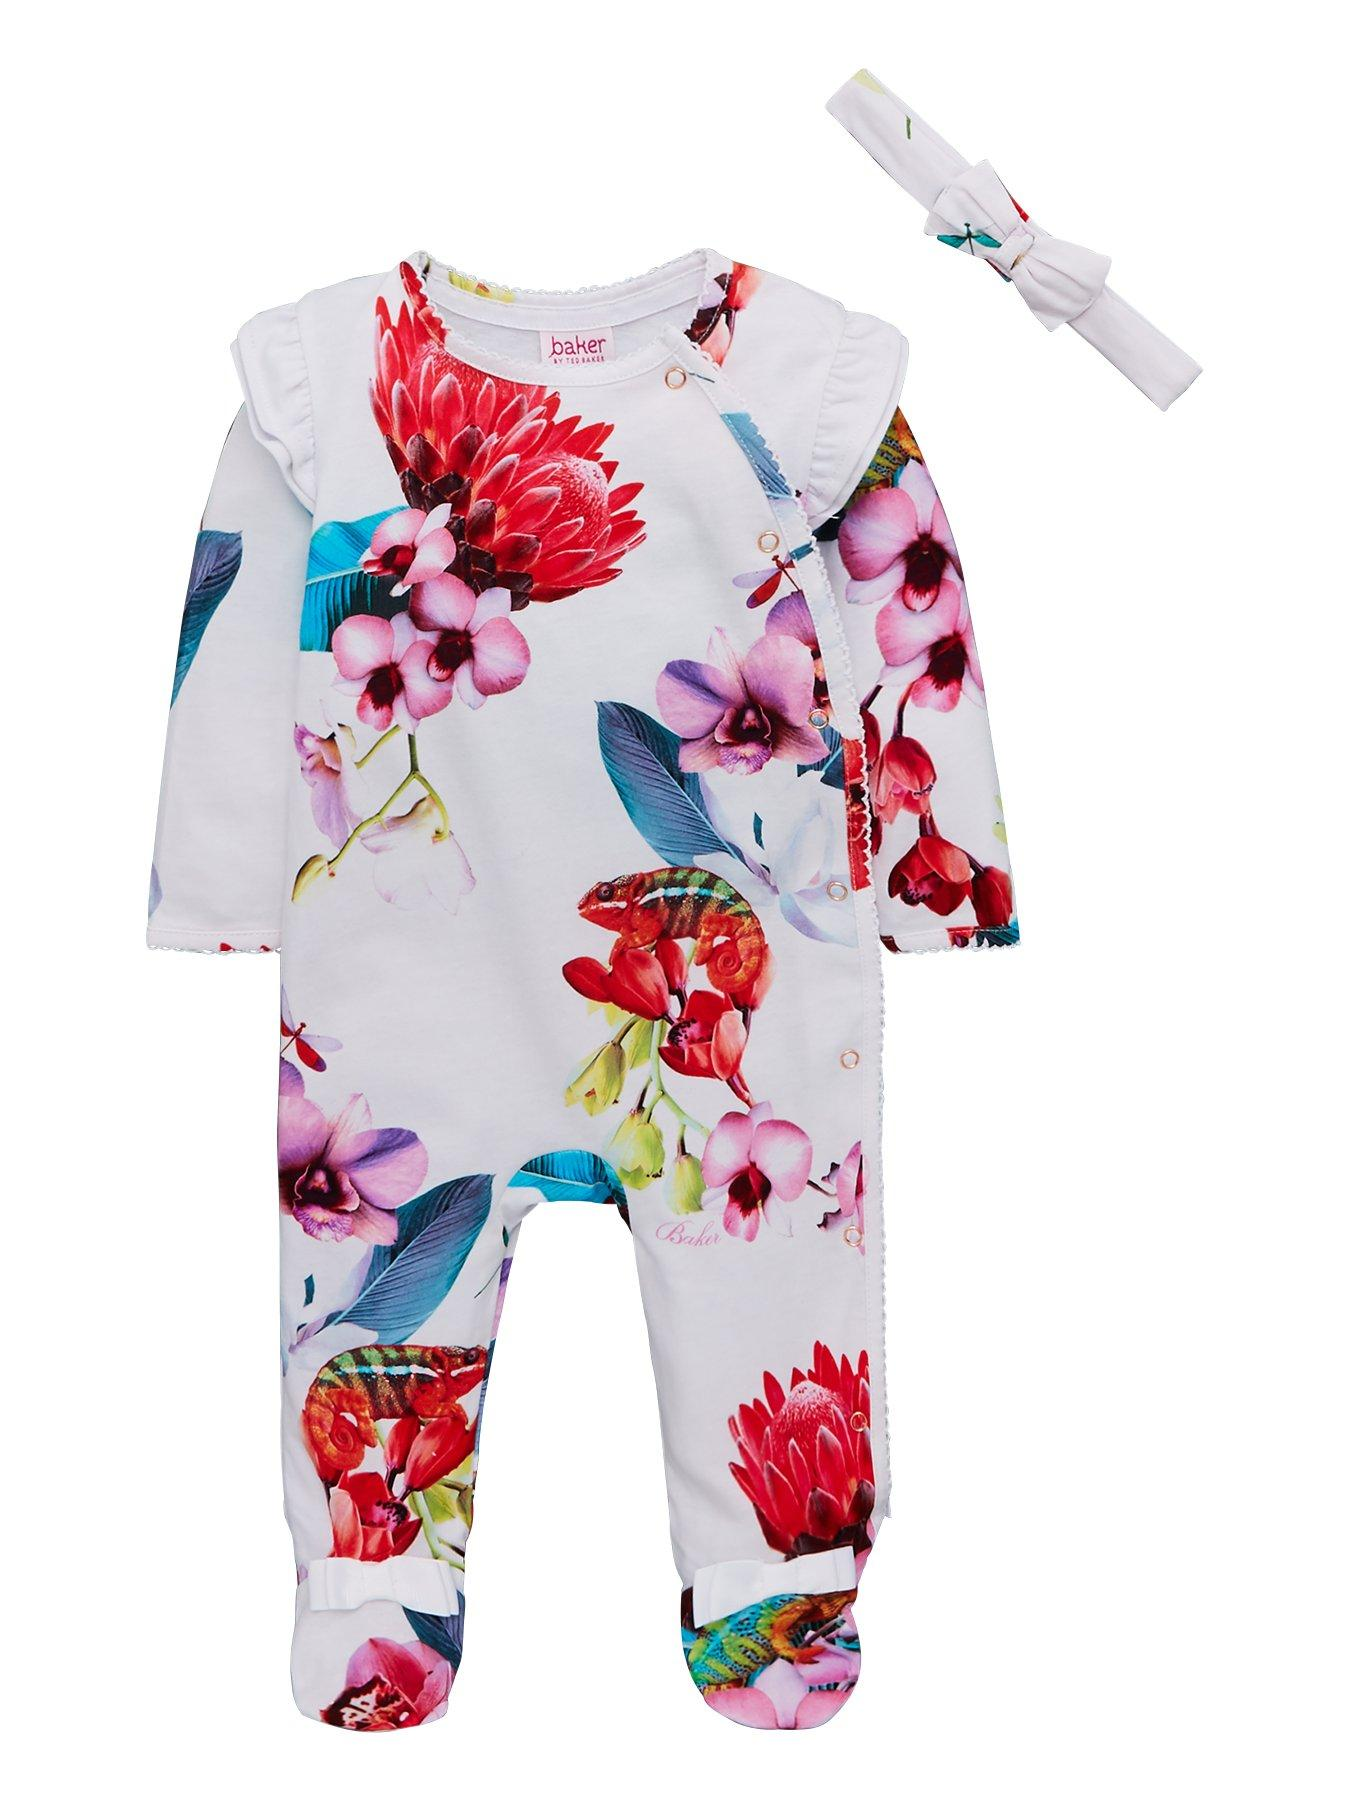 floral Creative Monsoon Girls Romper Sleepsuit 0-3 Months Low Price